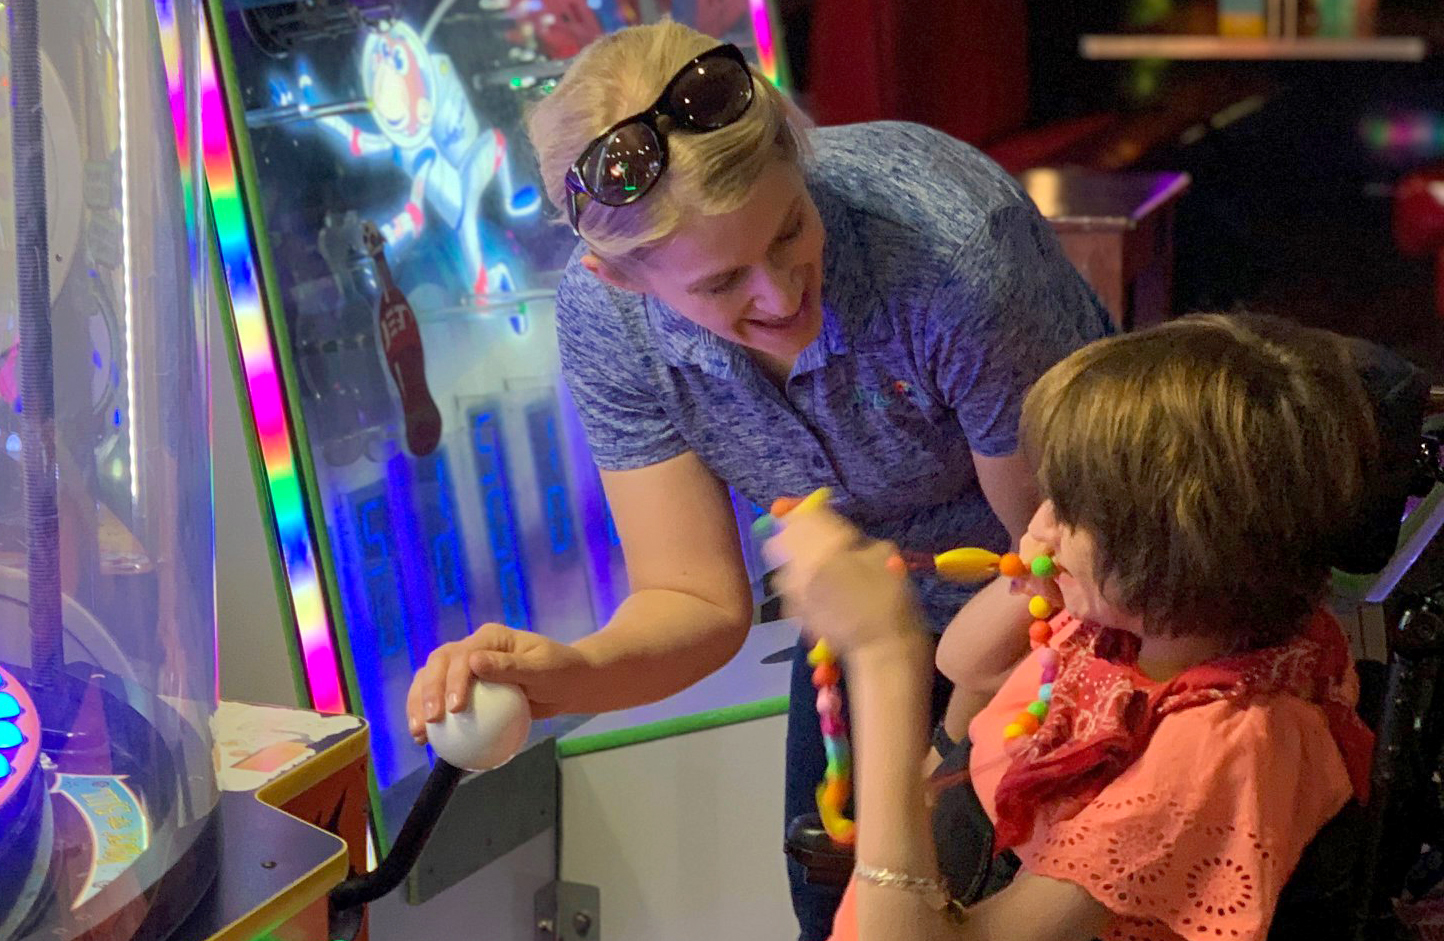 a woman and a child laughing while at an arcade